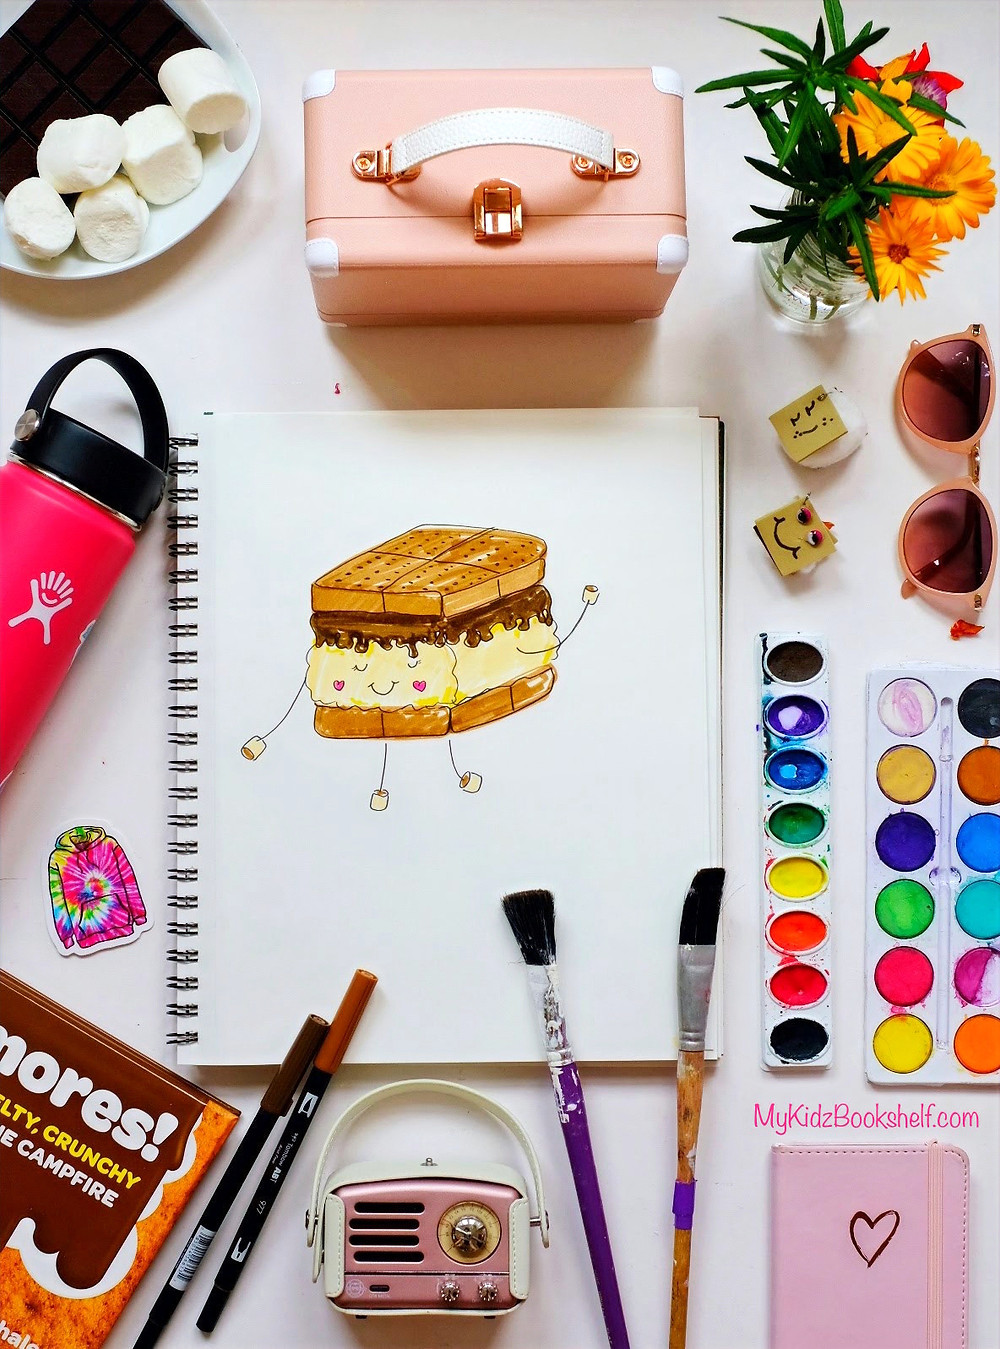 How to Draw S'more diy tutorial with art supplies, marshmallows and Hydroflask